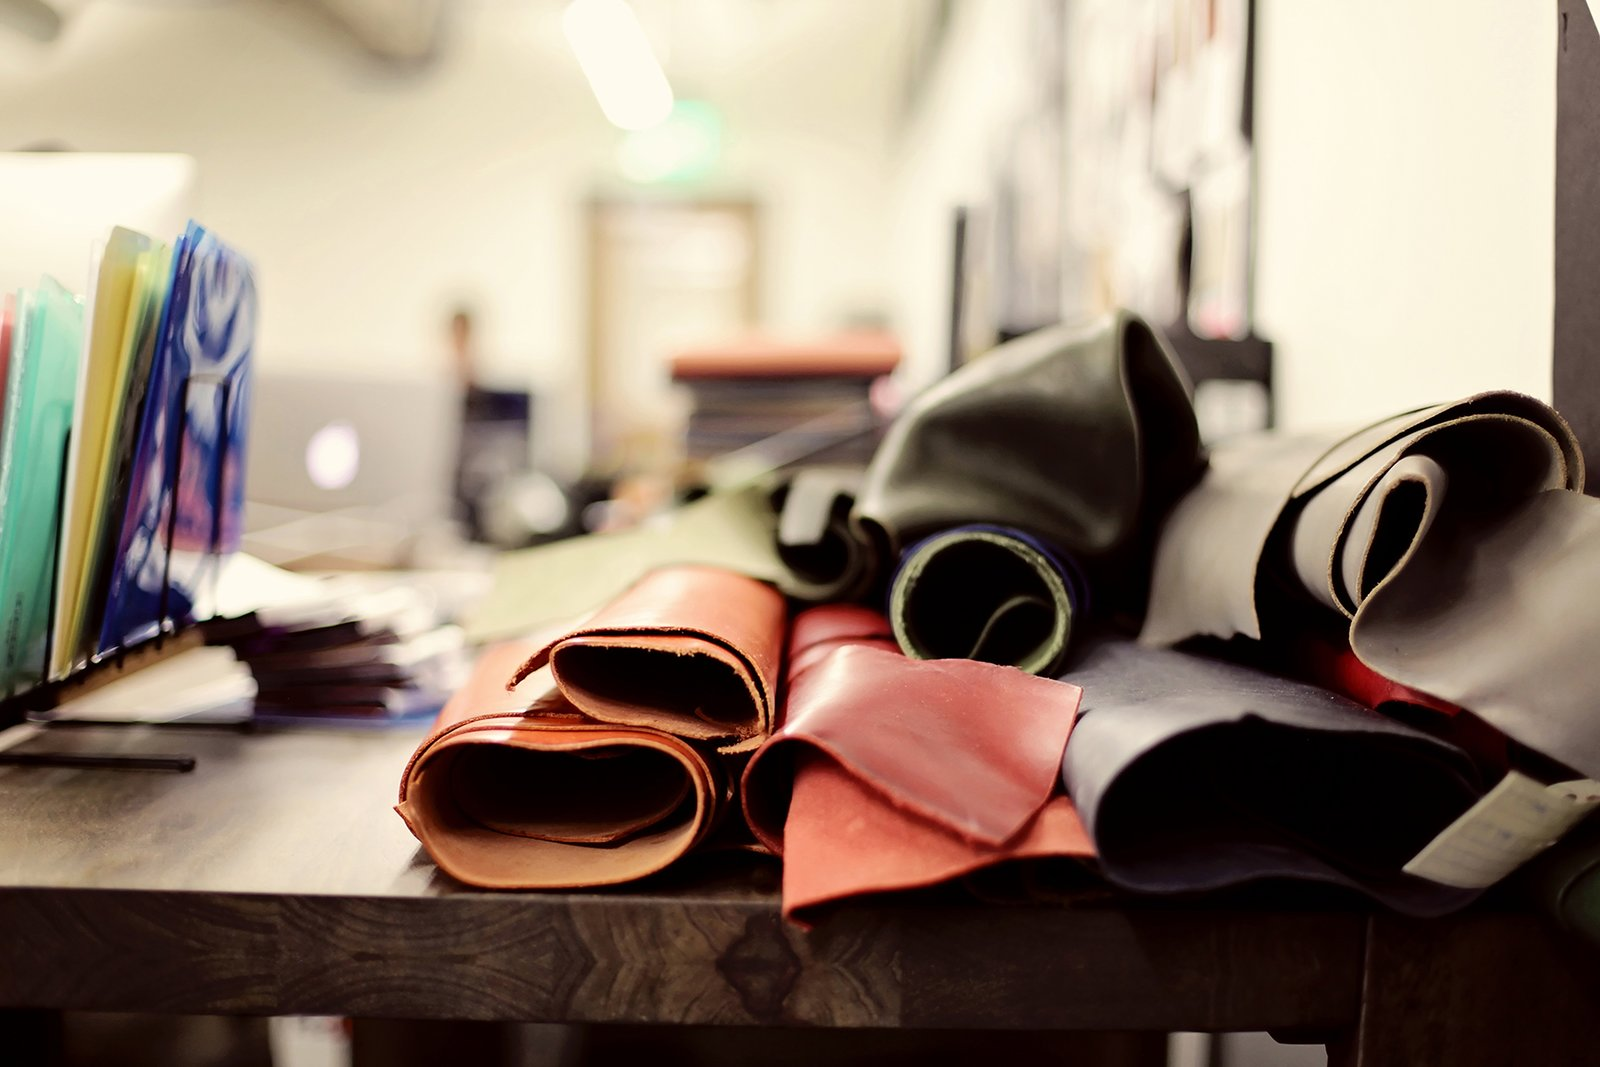 Shinola has expanded its space in Detroit's Argonaut Building to include leather manufactuirng. The company sources most of its raw materials from tanneries in Chicago, Maine, and Pennsylvania. Photo courtesy of Shinola.  Photo 1 of 6 in Shinola Expands its Detroit Manufacturing Space